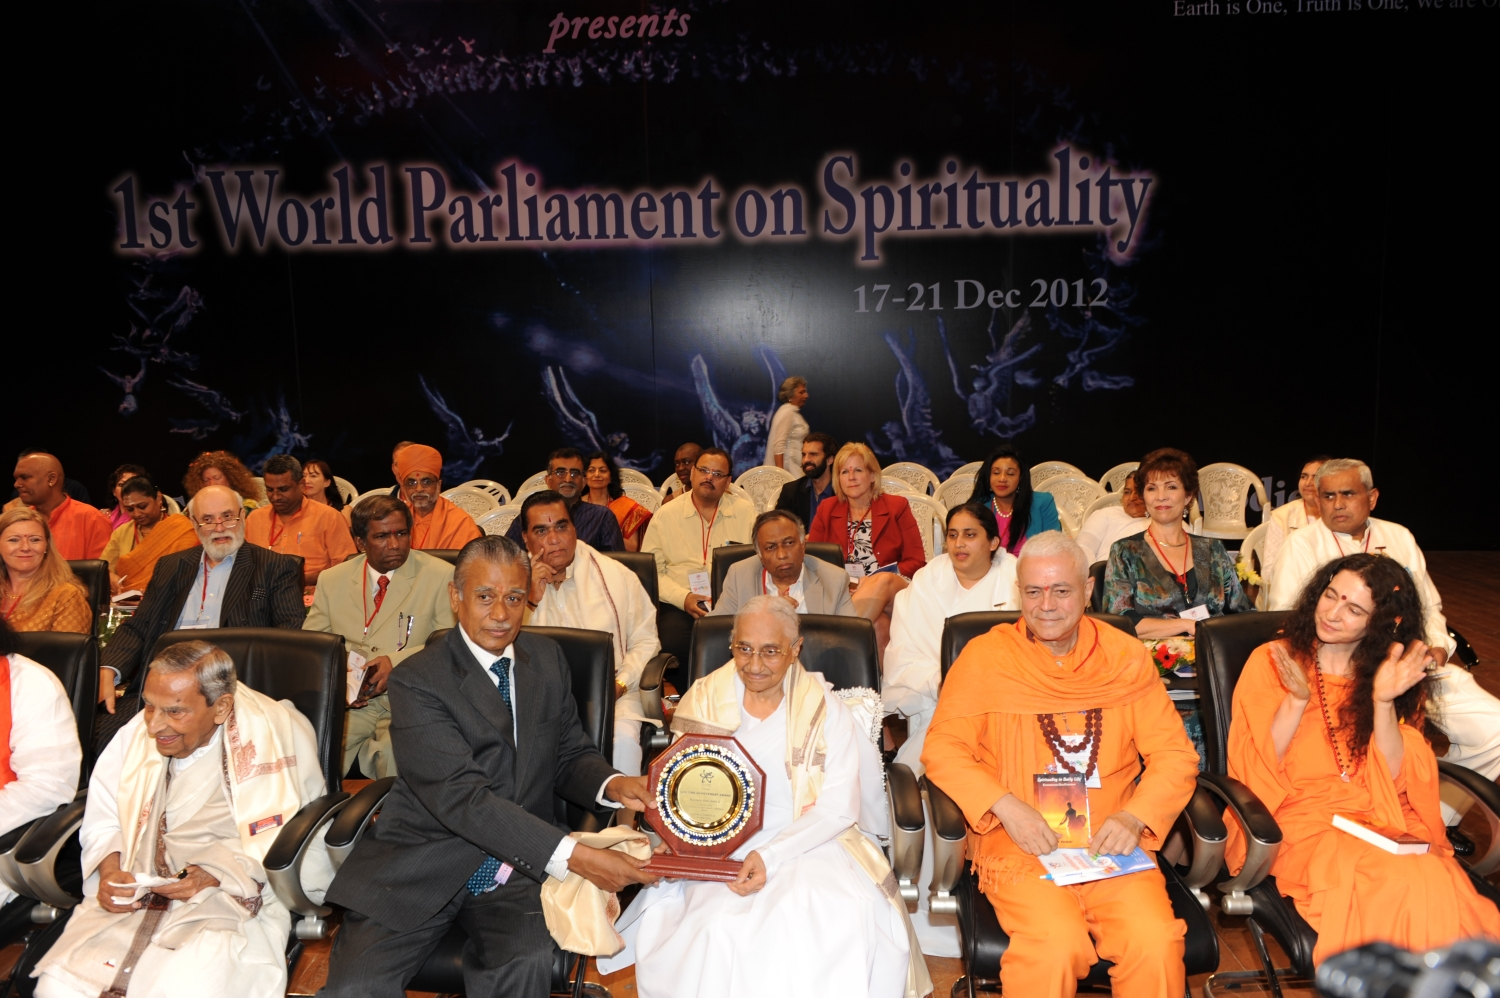 First World Parliament on Spirituality - India, Hyderabad - 2012, December